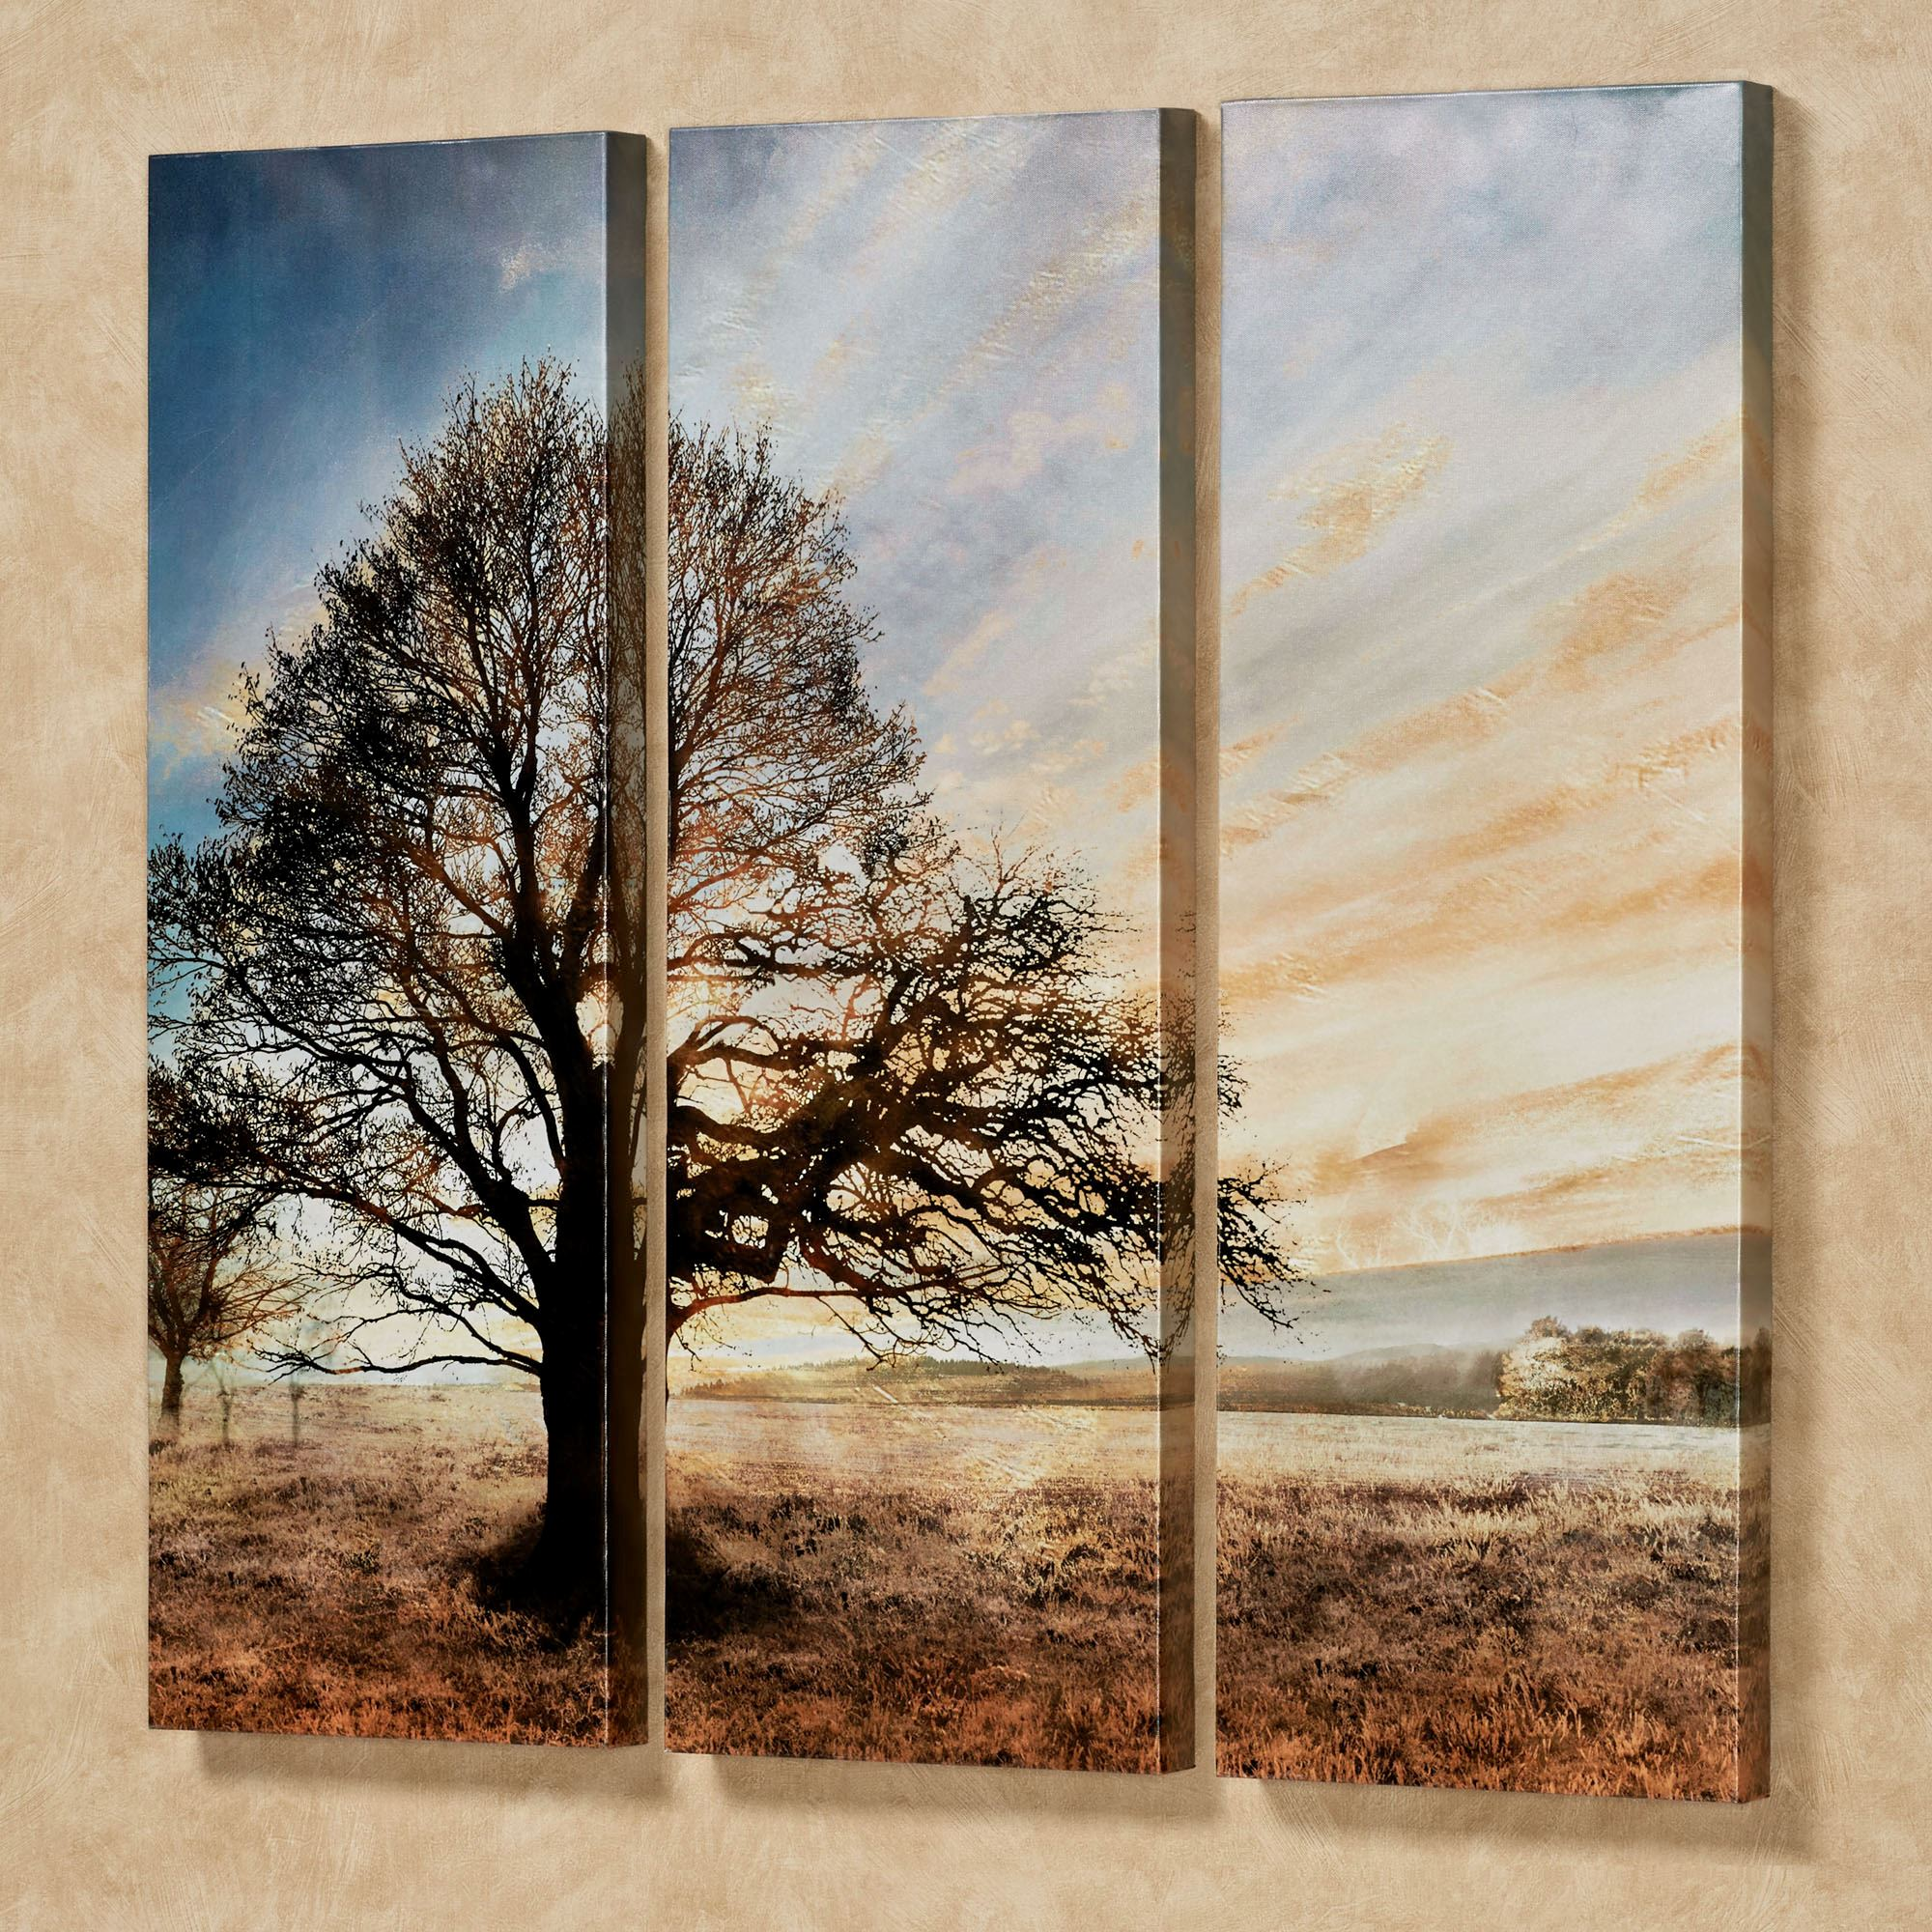 Illuminated Tree Triptych Canvas Wall Art Set